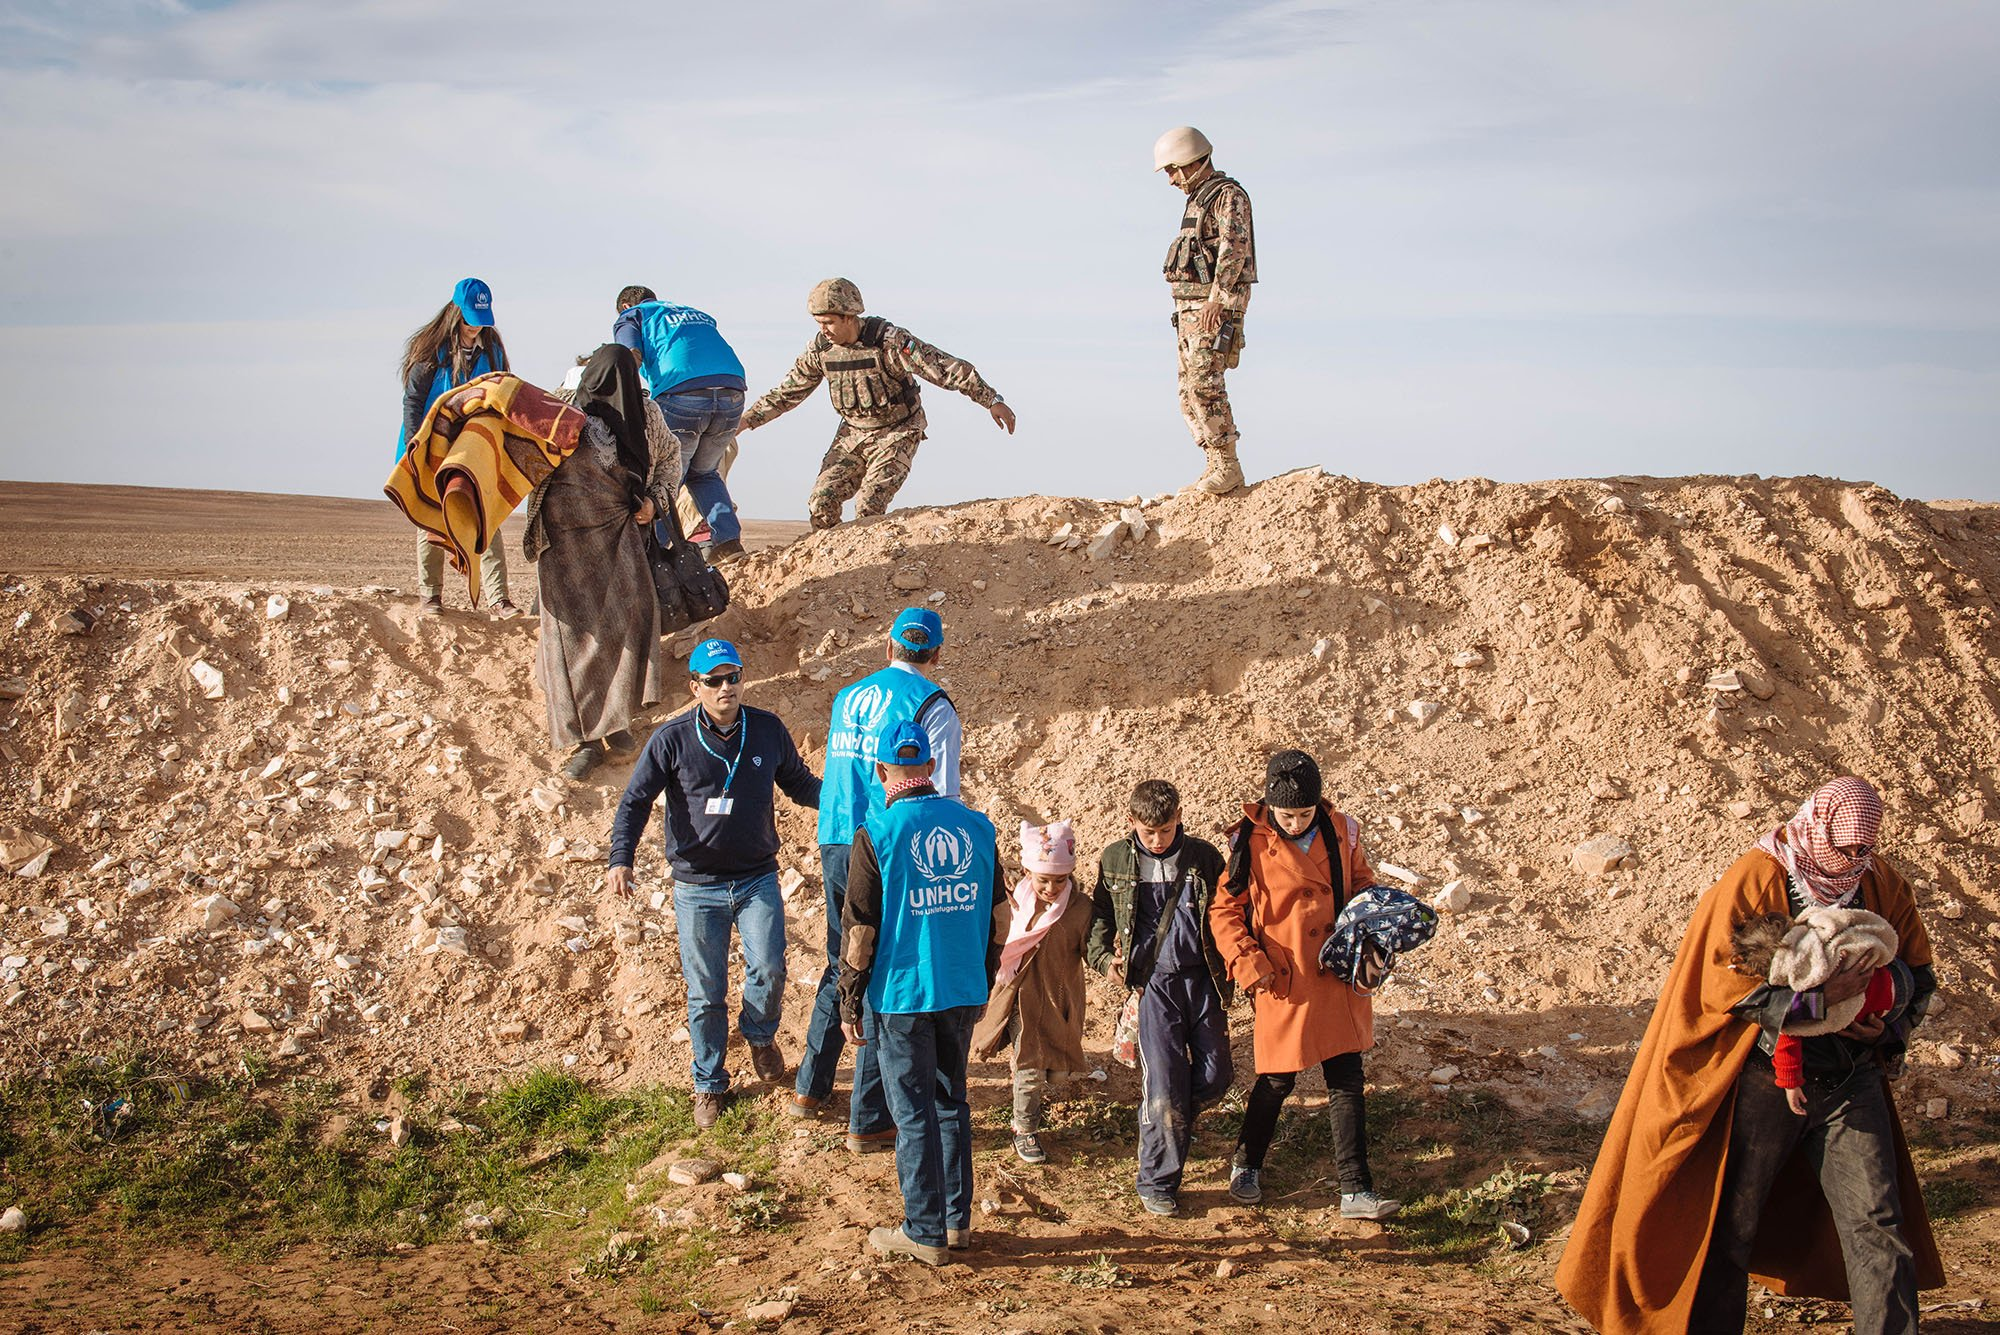 Syrian refugees walk the final metres across the desert toward the berm that marks the official Al-Ruwayshid Jordanian/Syrian border crossing. (UNHCR /J. Kohler)